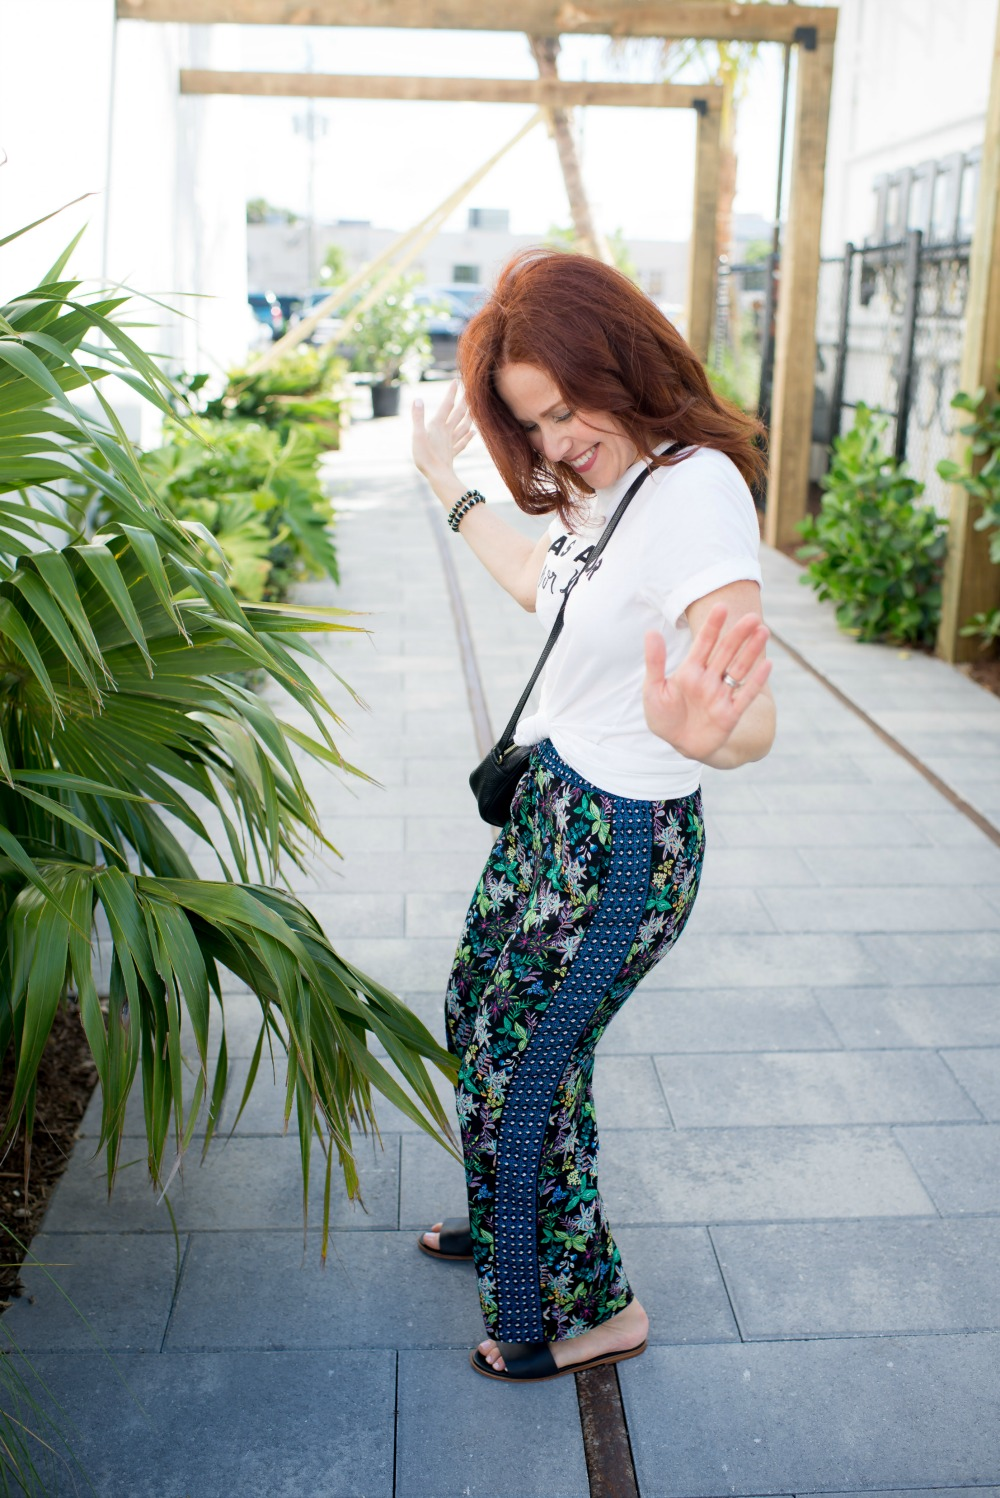 Floral pants for summer - Cropped Wide Leg Pants featured by popular Florida style blogger The Modern Savvy